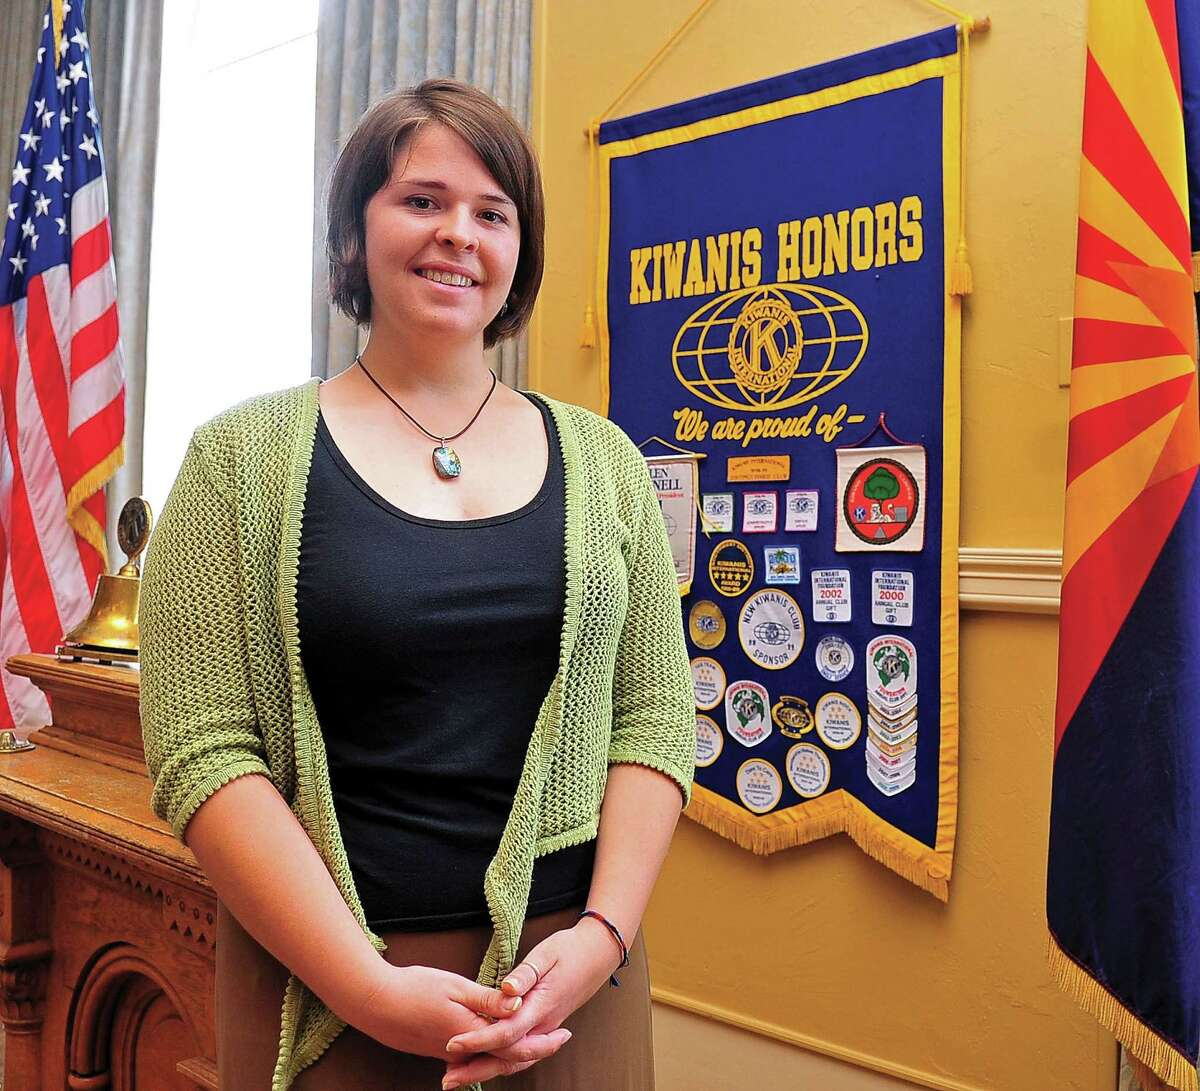 FILE -- In this May 30, 2013 file photo, Kayla Mueller is shown after speaking to a group in Prescott, Ariz. Omar Alkhani, boyfriend of Mueller, spoke to The Associated Press on Sunday, Feb. 15, 2015, via webcam from Turkey in one of his first interviews. Alkhani talked about how he met Mueller in 2010 and the last time he saw her in 2013 as a prisoner of the Islamic State group. The U.S. government and Muellerís family confirmed her death last week. (AP Photo/The Daily Courier, Matt Hinshaw, File) MANDATORY CREDIT